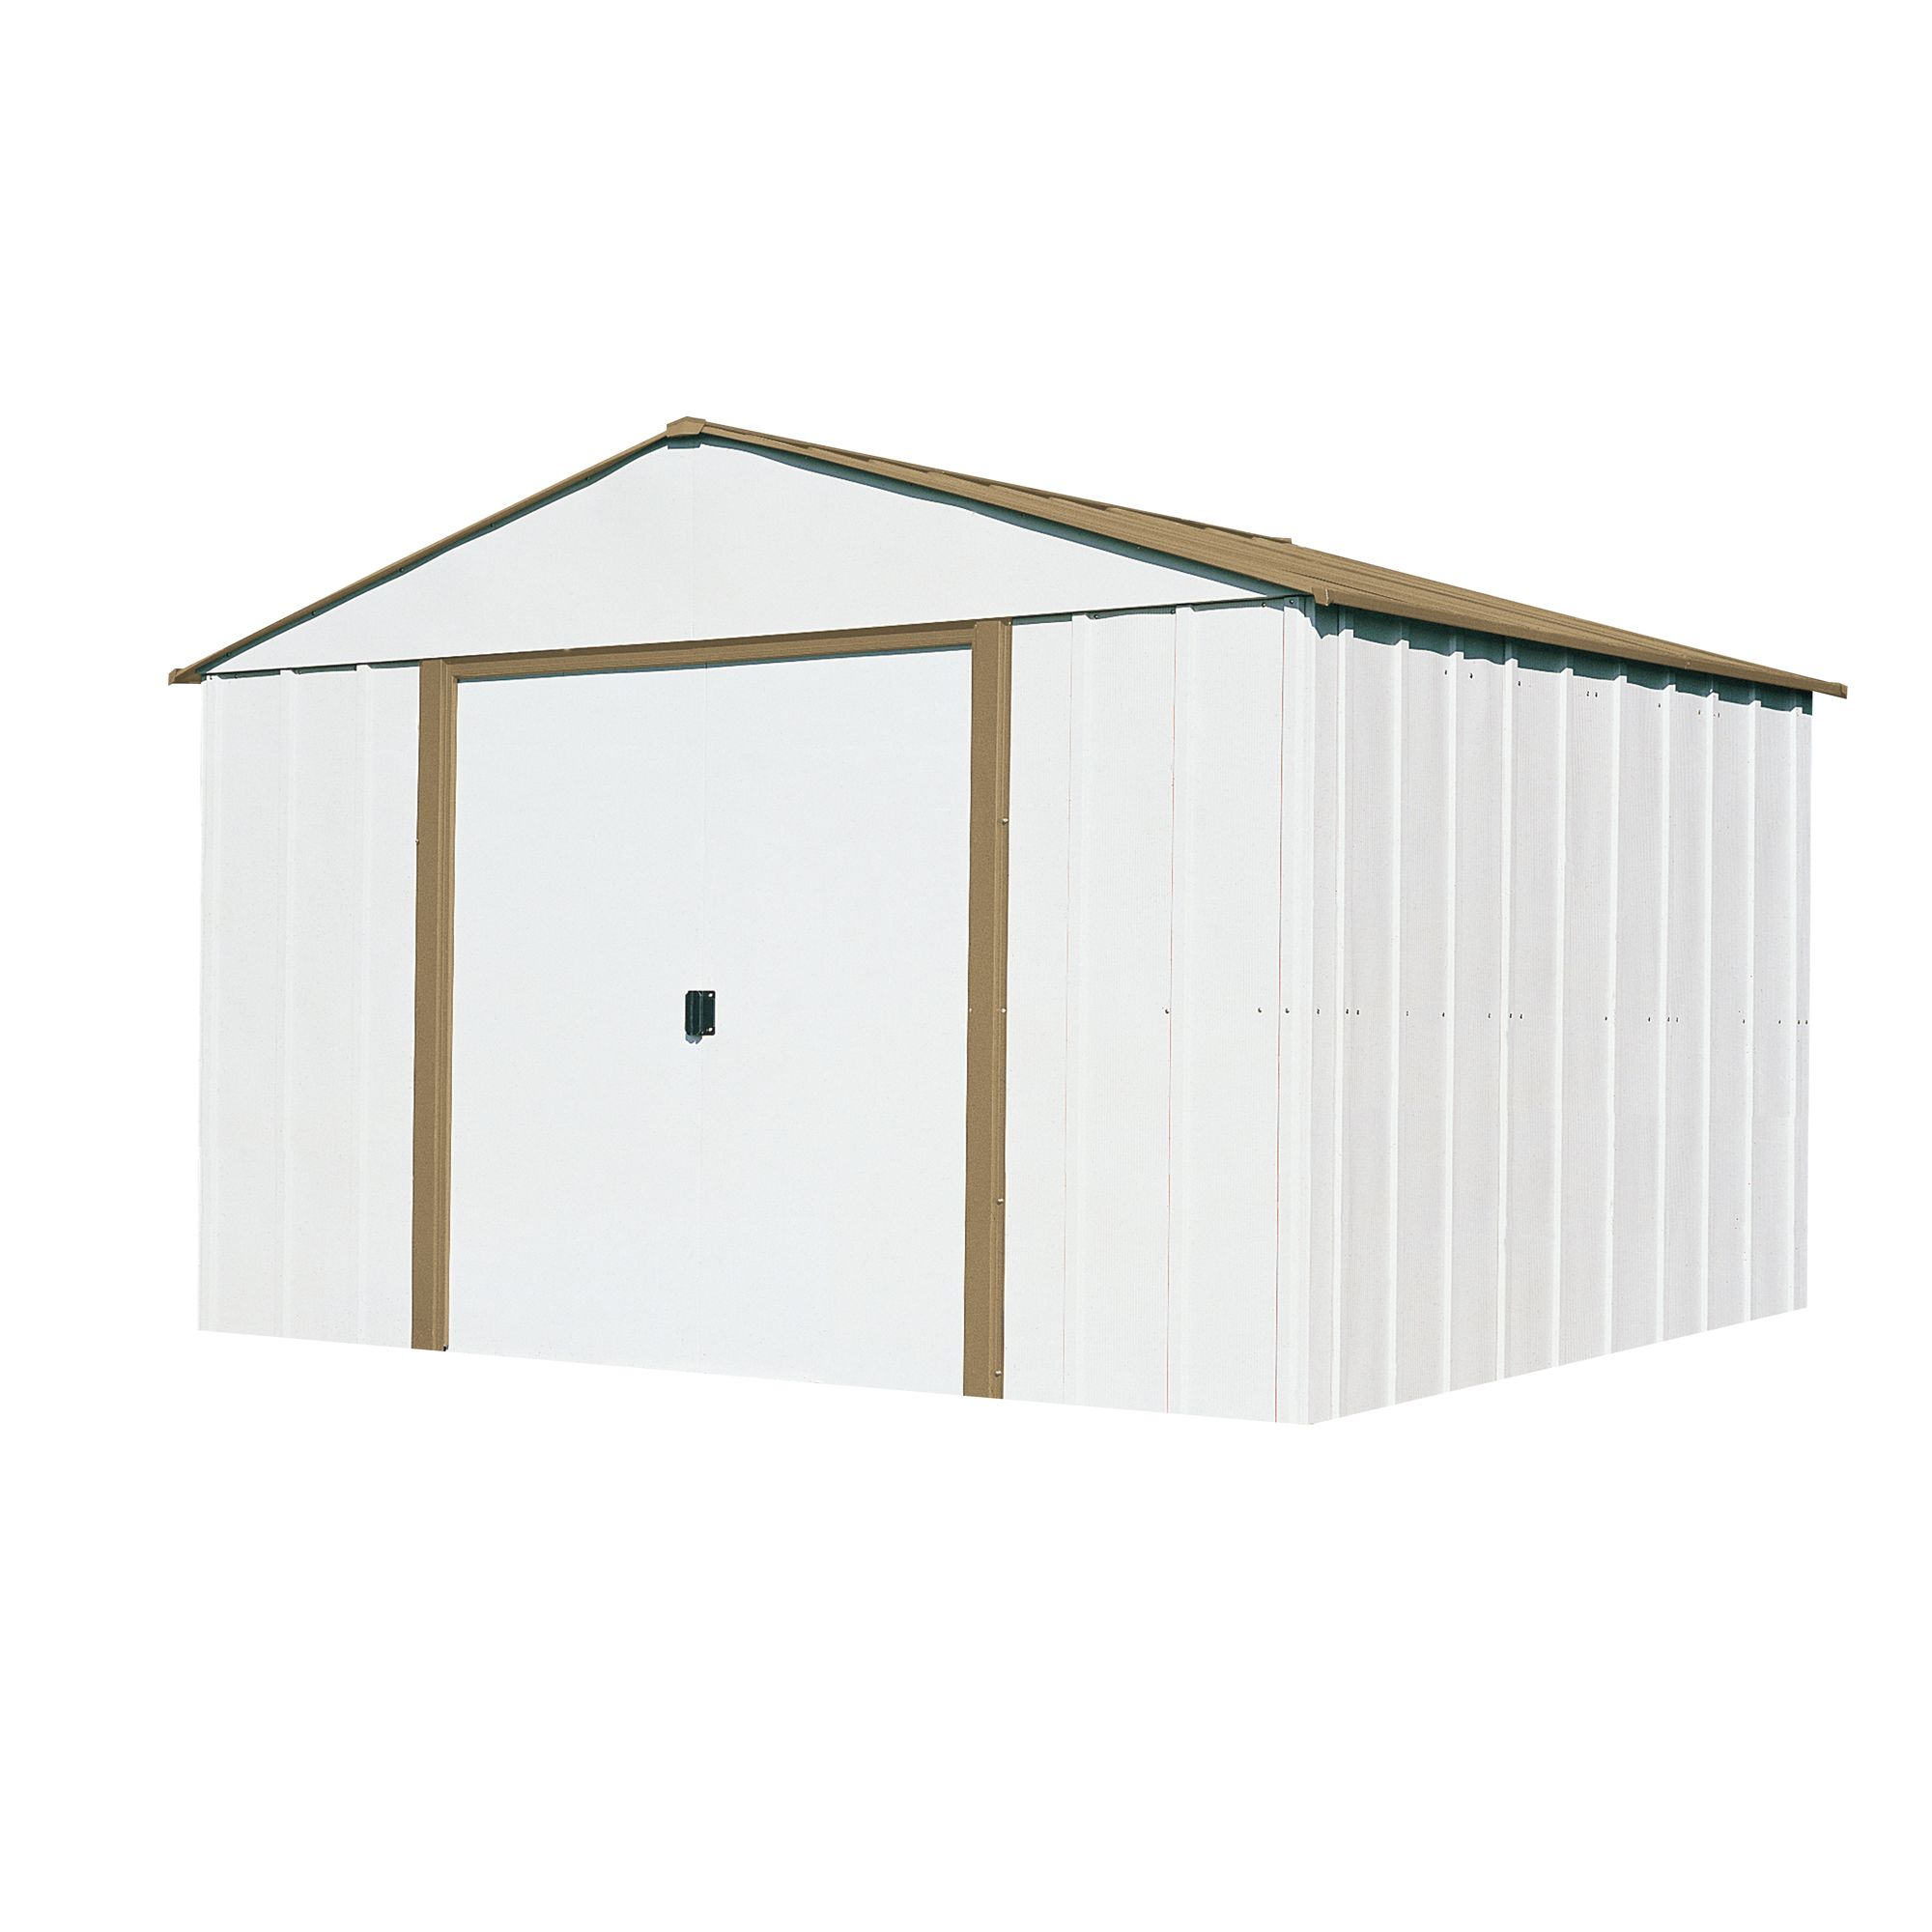 Sheds & Storage Buildings